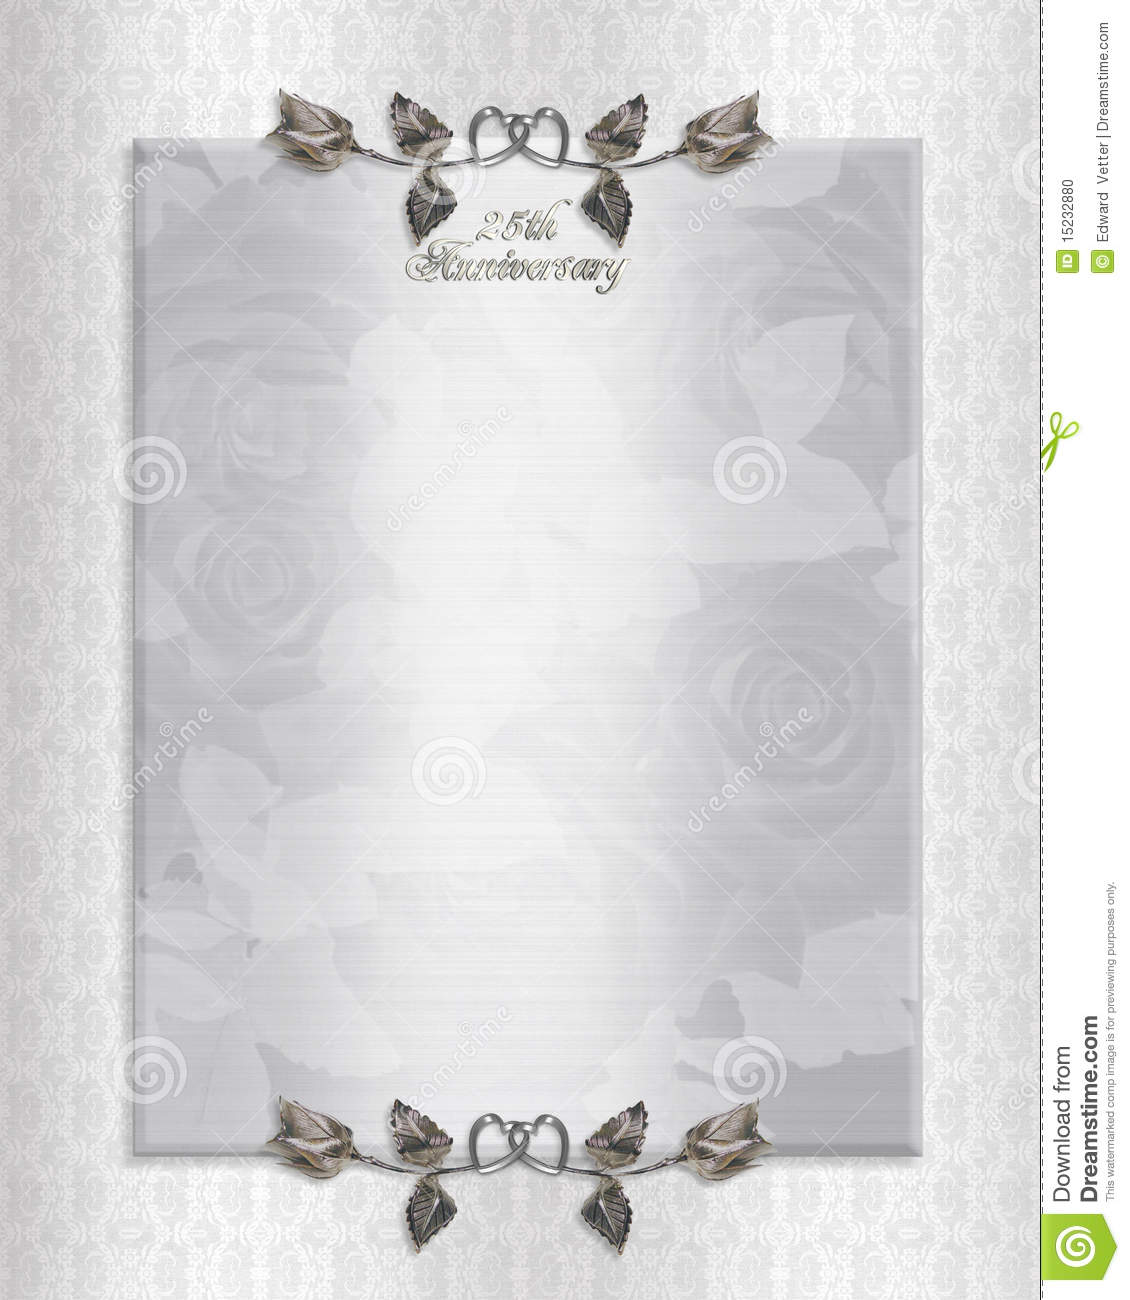 Anniversary Invitation Template Hunecompanycom - Wedding invitation templates: wedding anniversary invitation templates